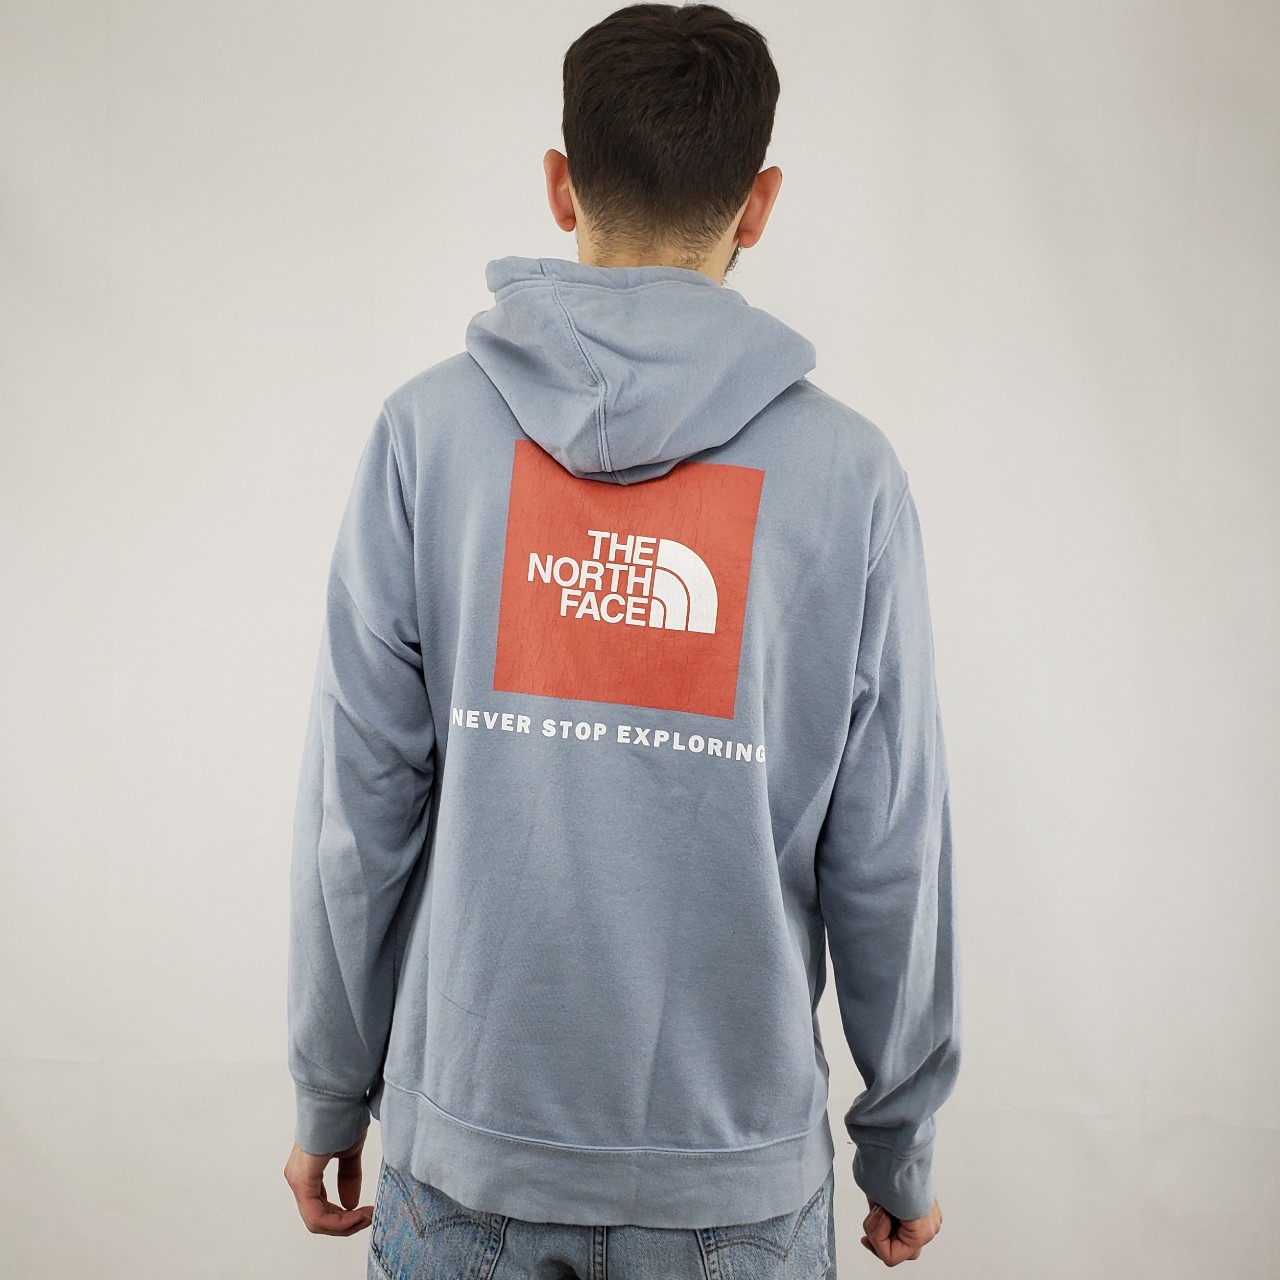 0d657c3a0 The North Face Hoodie light blue/red with print on... - Depop